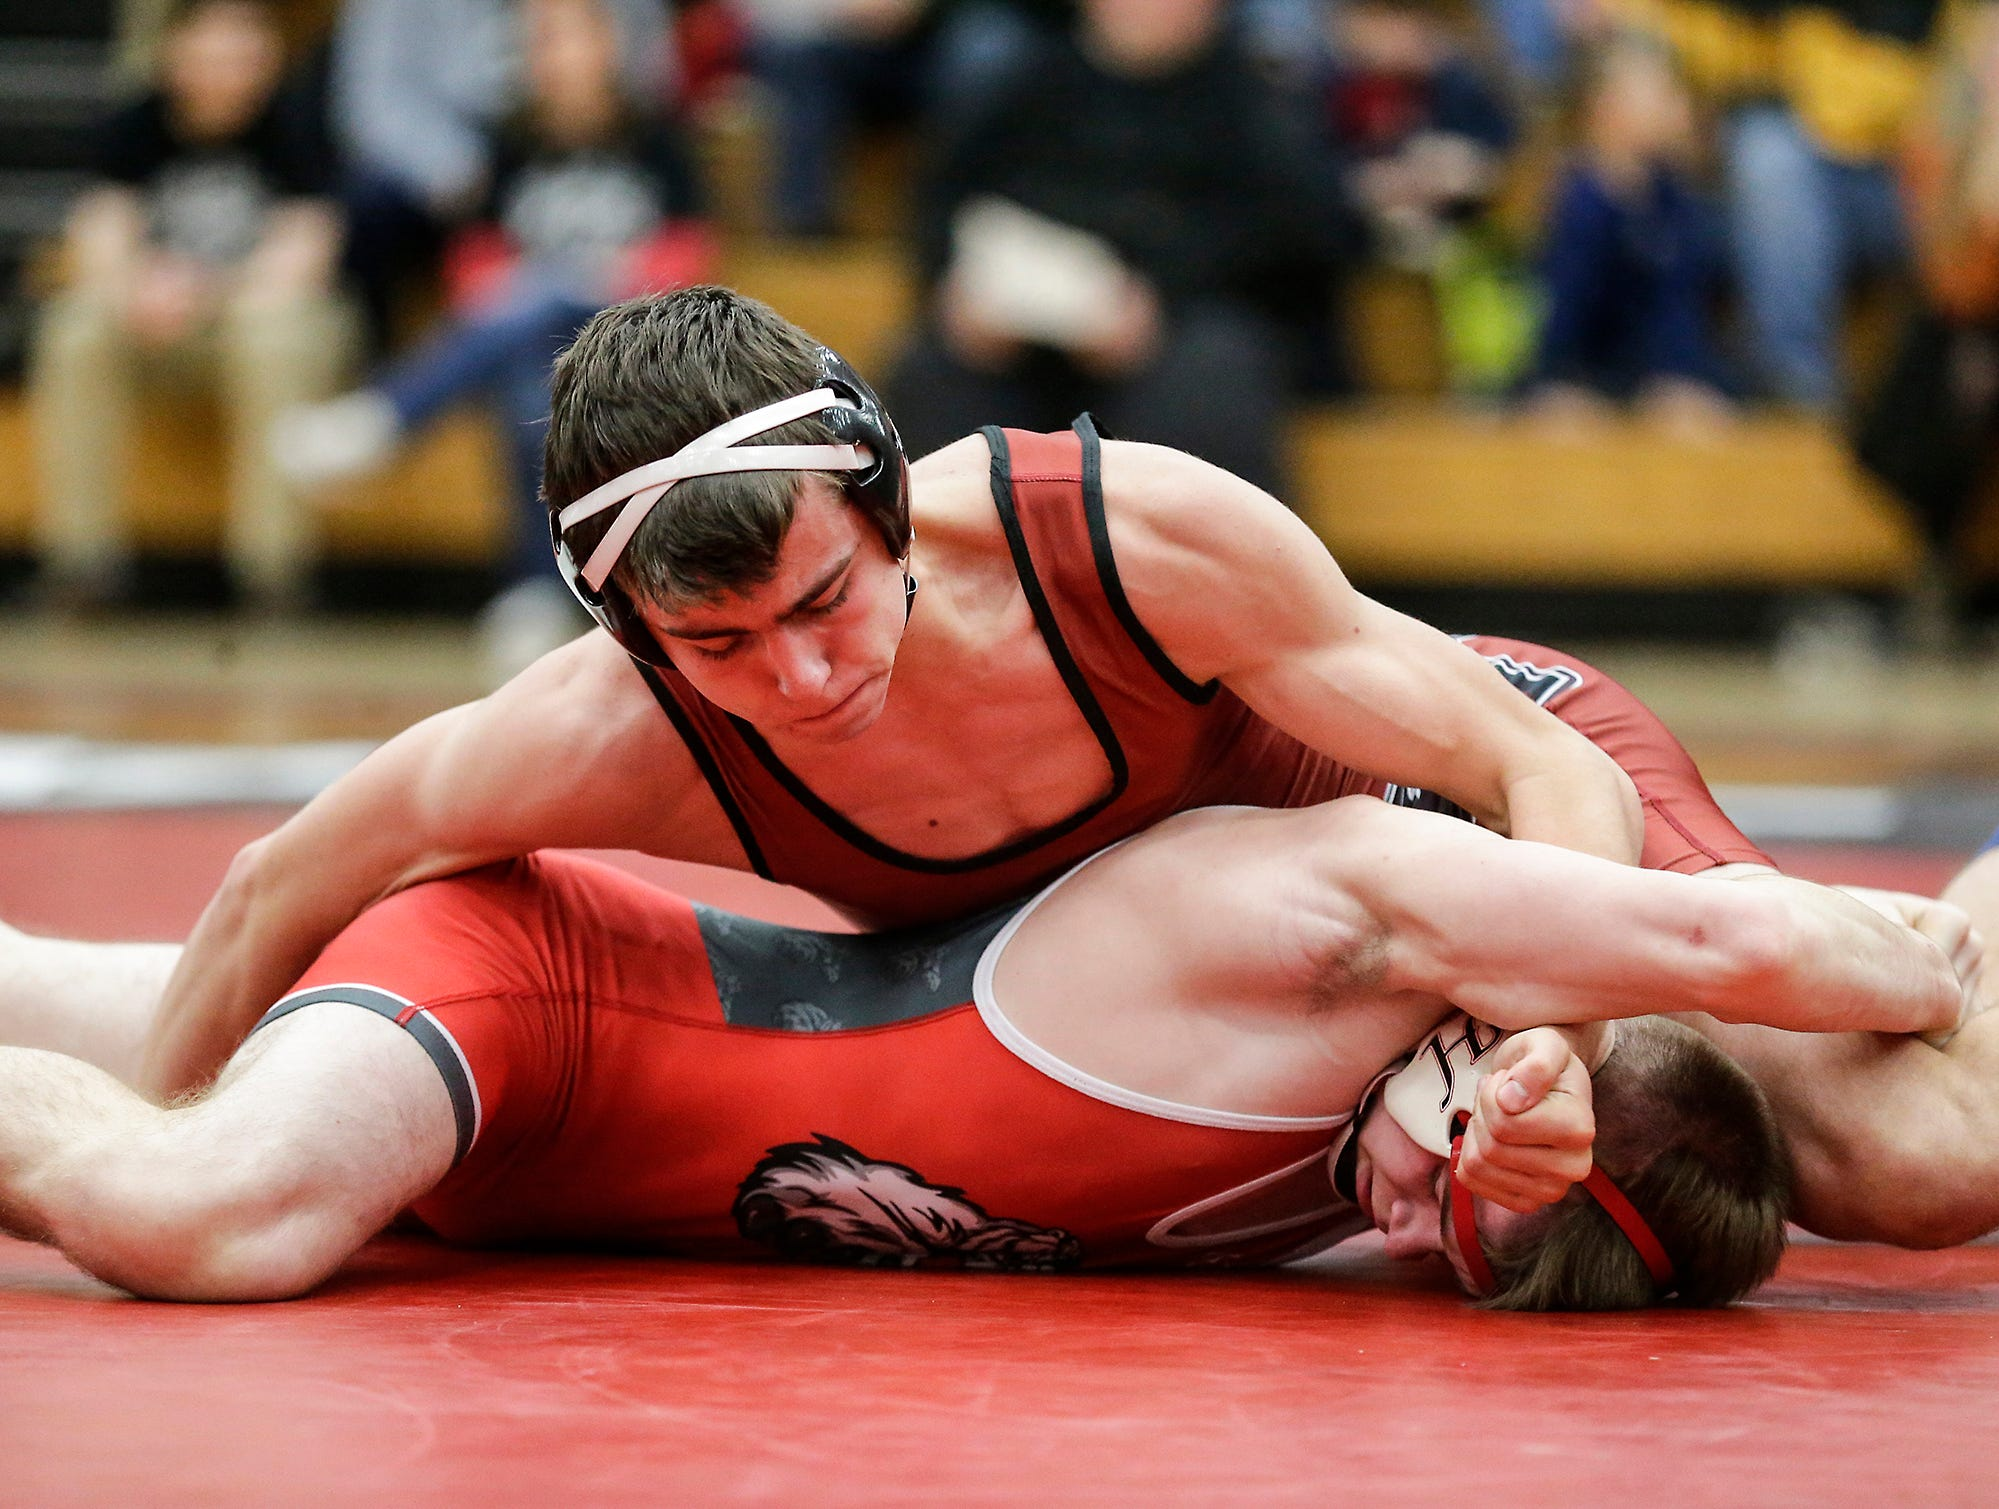 Fond du Lac High School wrestling's Logan Naker wrestles against Hortonville High School's Lucas Shover in the 152 weight class during their meet Thrusday, December 6, 2018 in Fond du Lac, Wisconsin. Naker won the match with a pin and Fond du Lac won the meet 51-18. Doug Raflik/USA TODAY NETWORK-Wisconsin